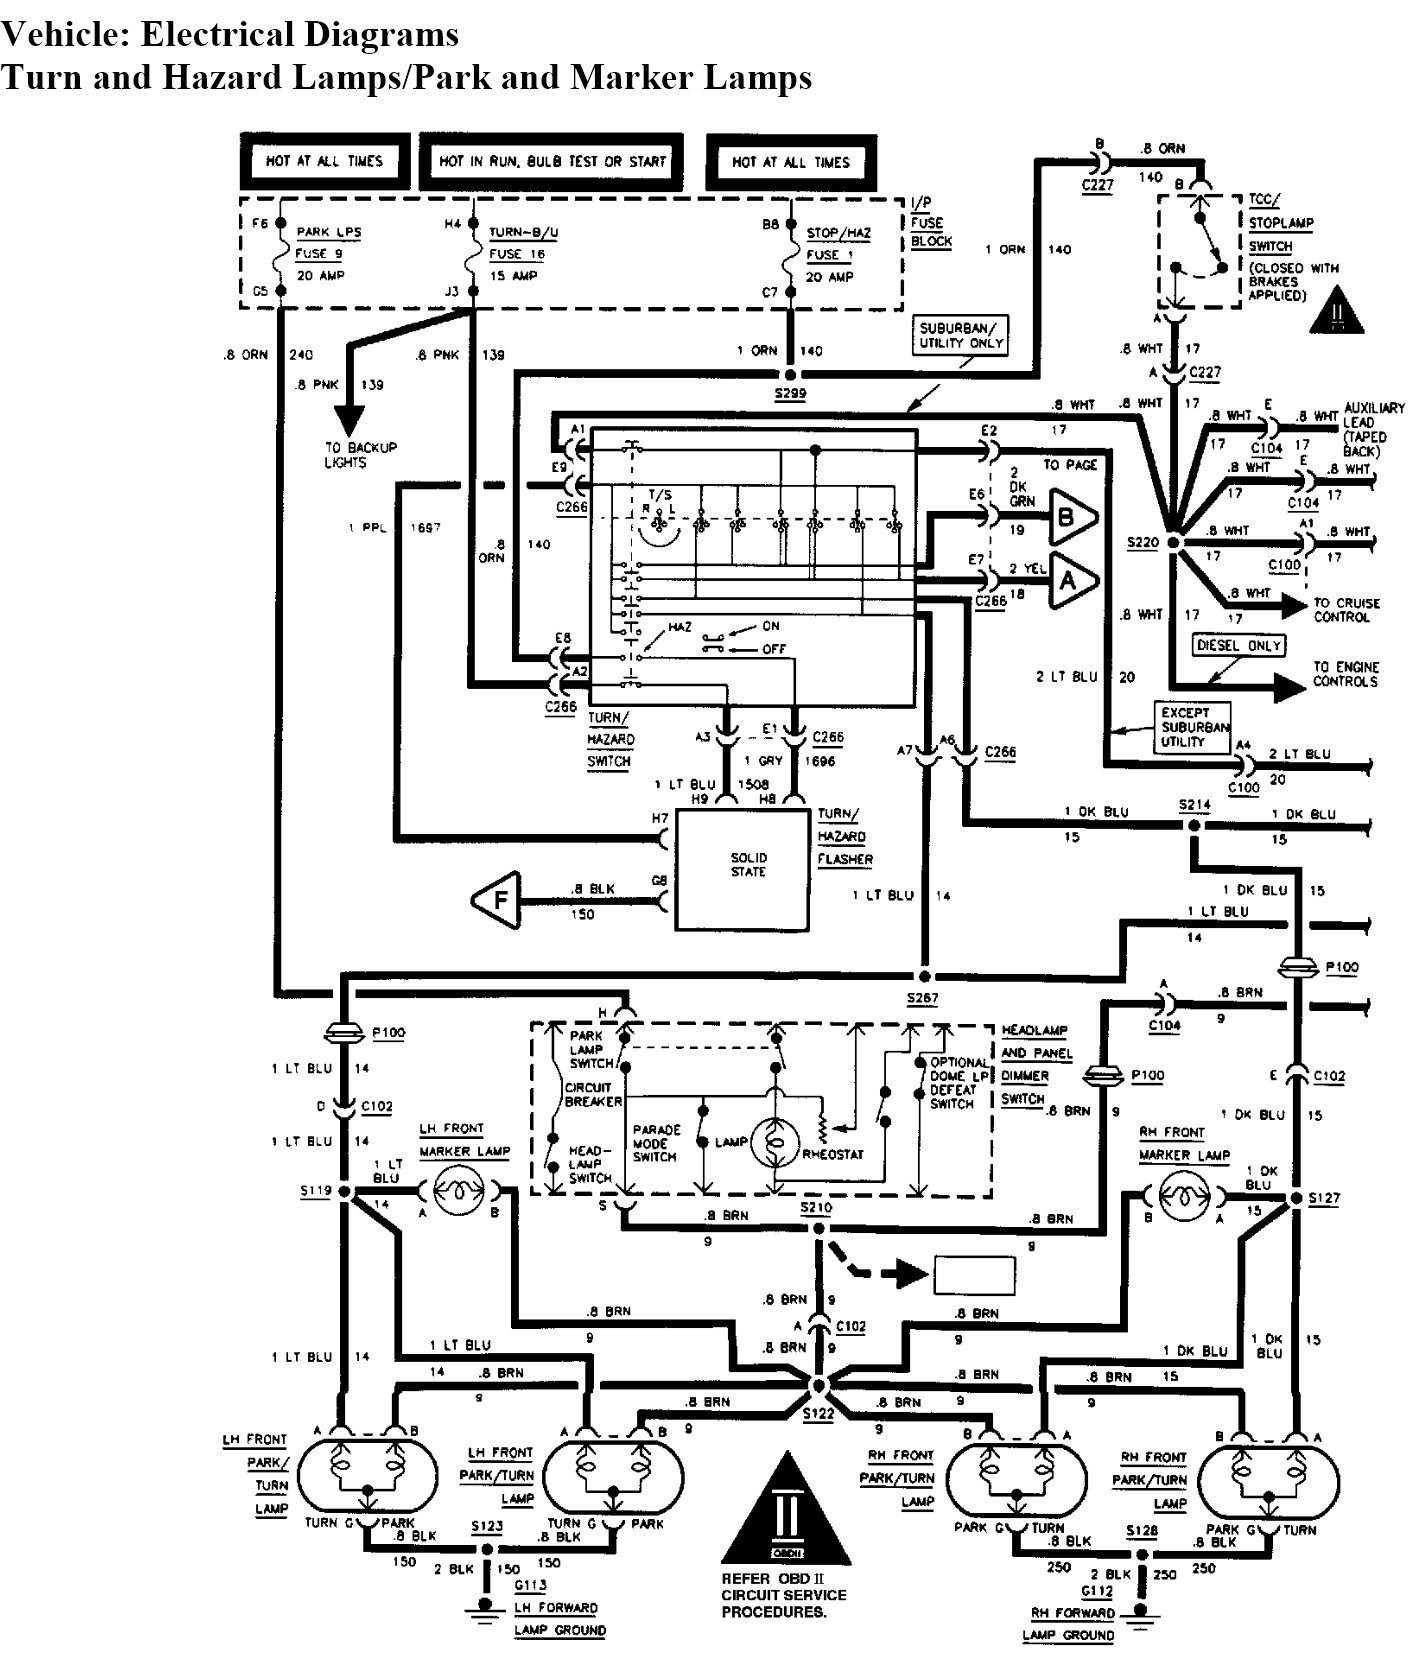 1992 jeep cherokee xj wiring diagram